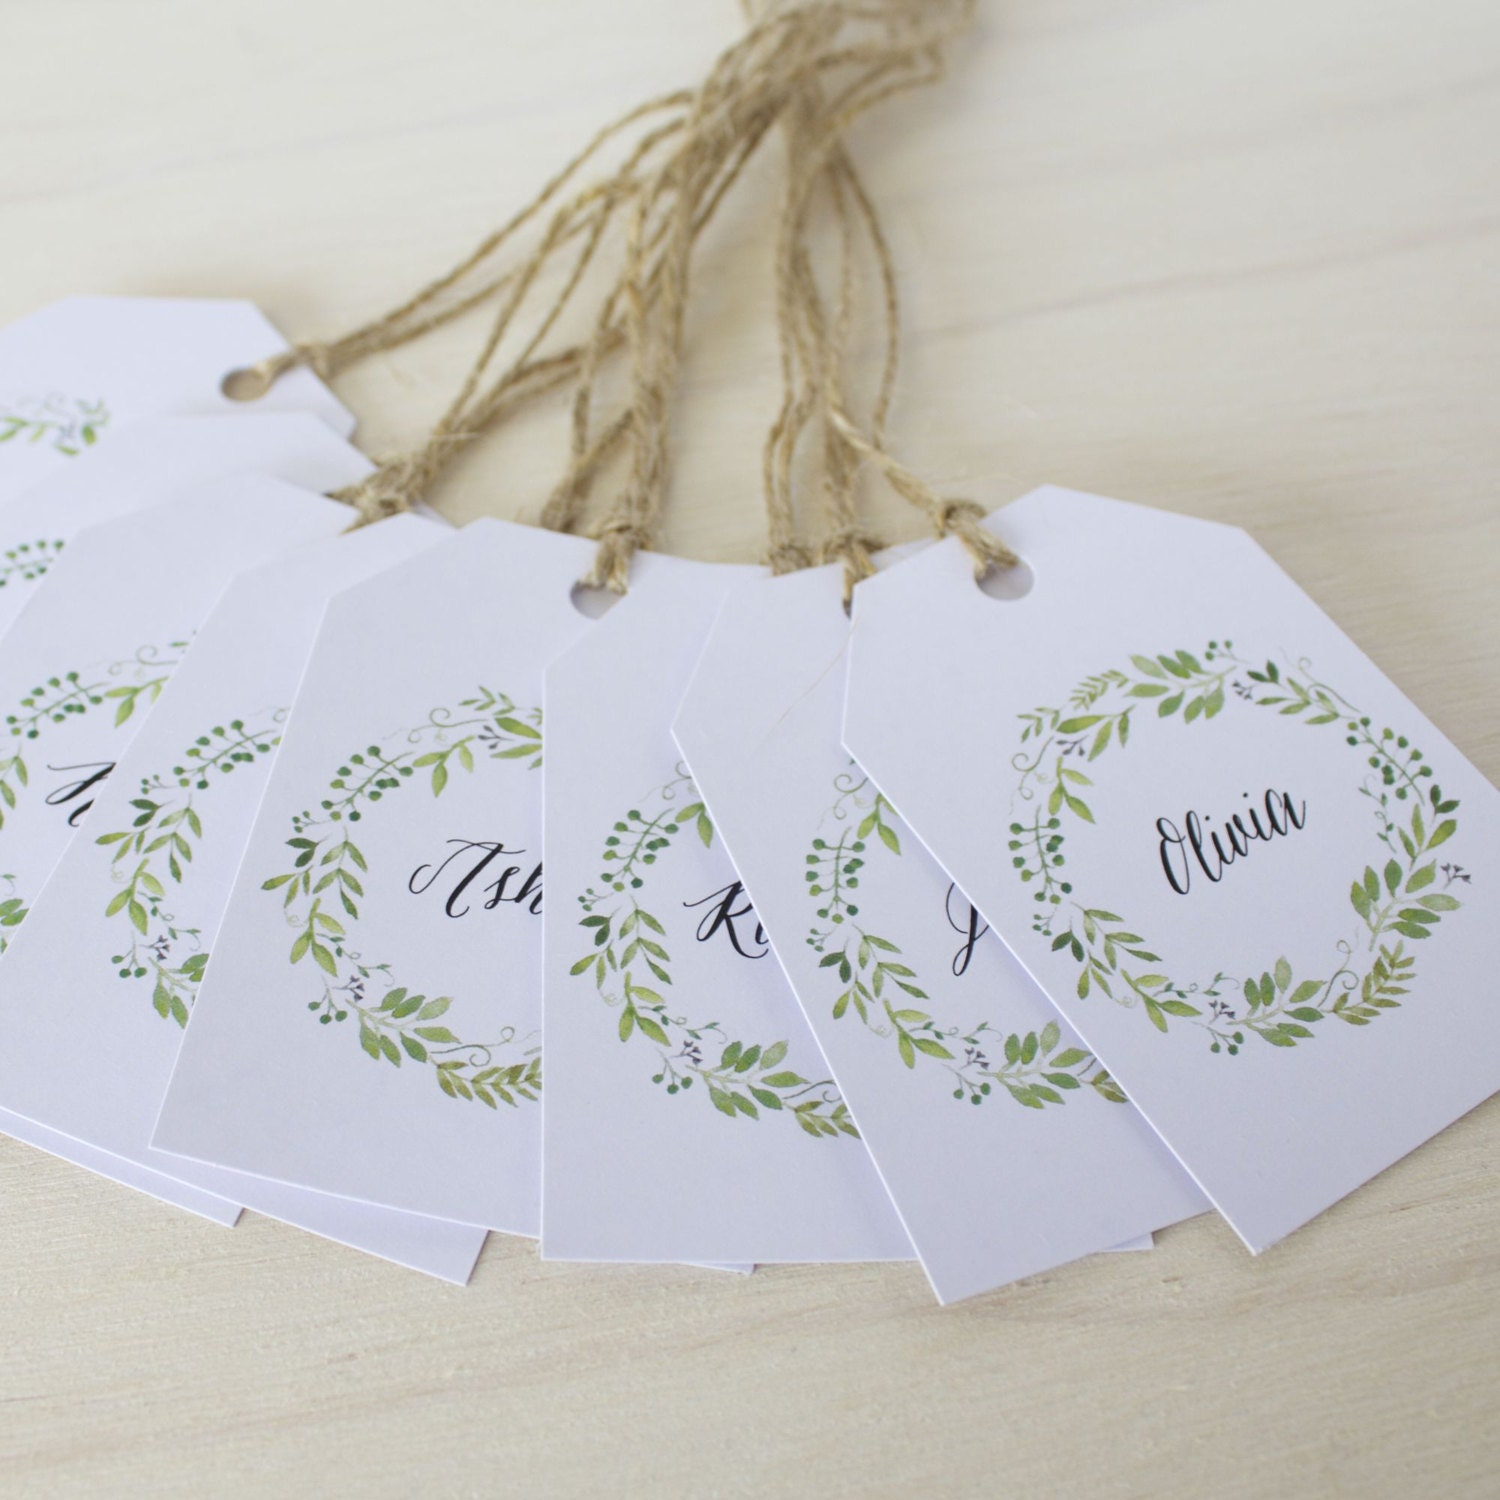 guest name tags wedding guest tags place card tags diy